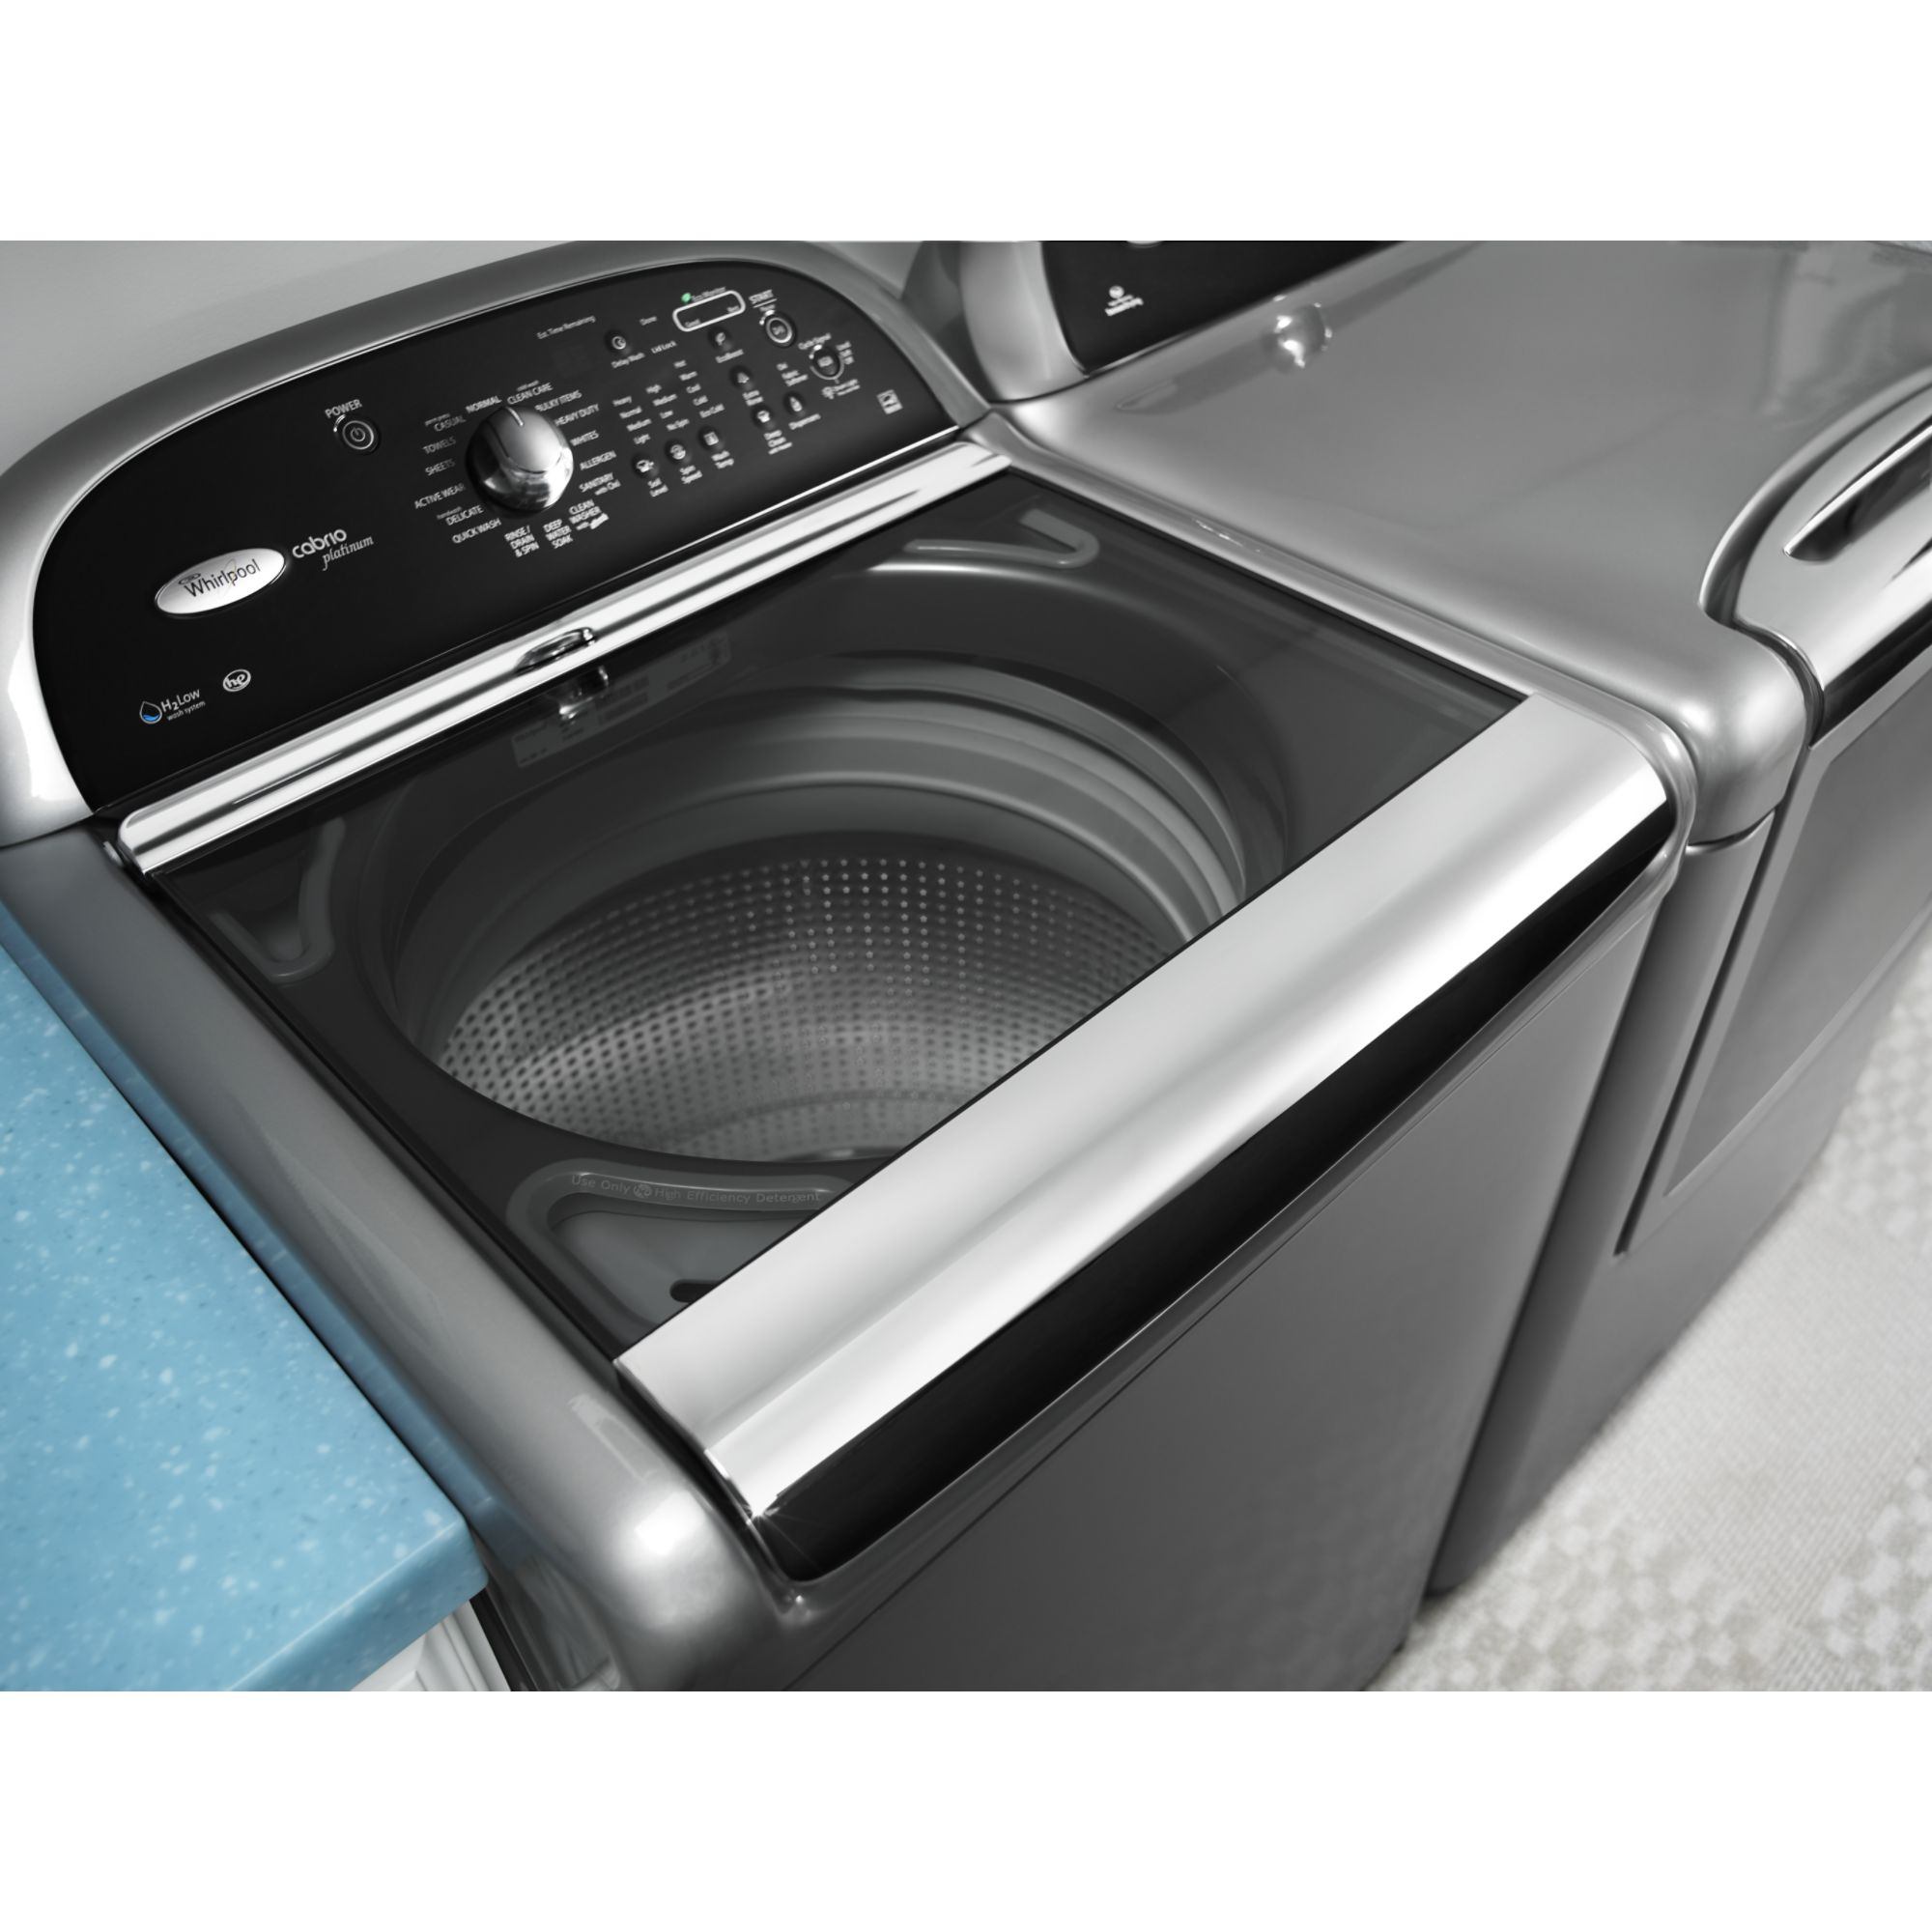 Whirlpool 4.6 cu. ft. Top-Load High-Efficiency Washer